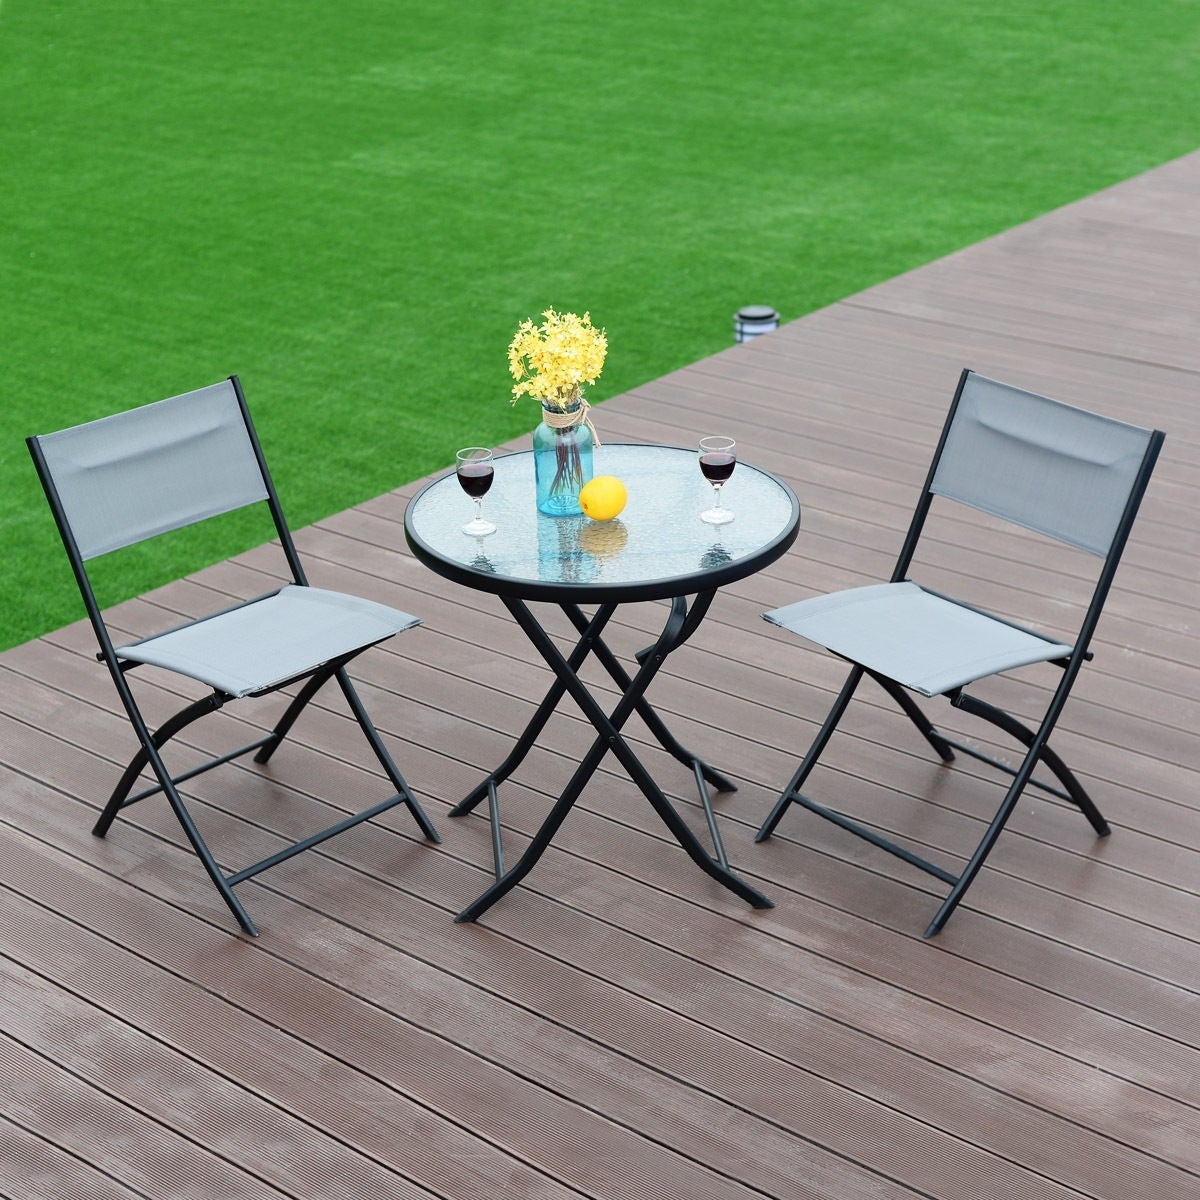 outdoor patio folding table royal cafe dining chairs set ibis